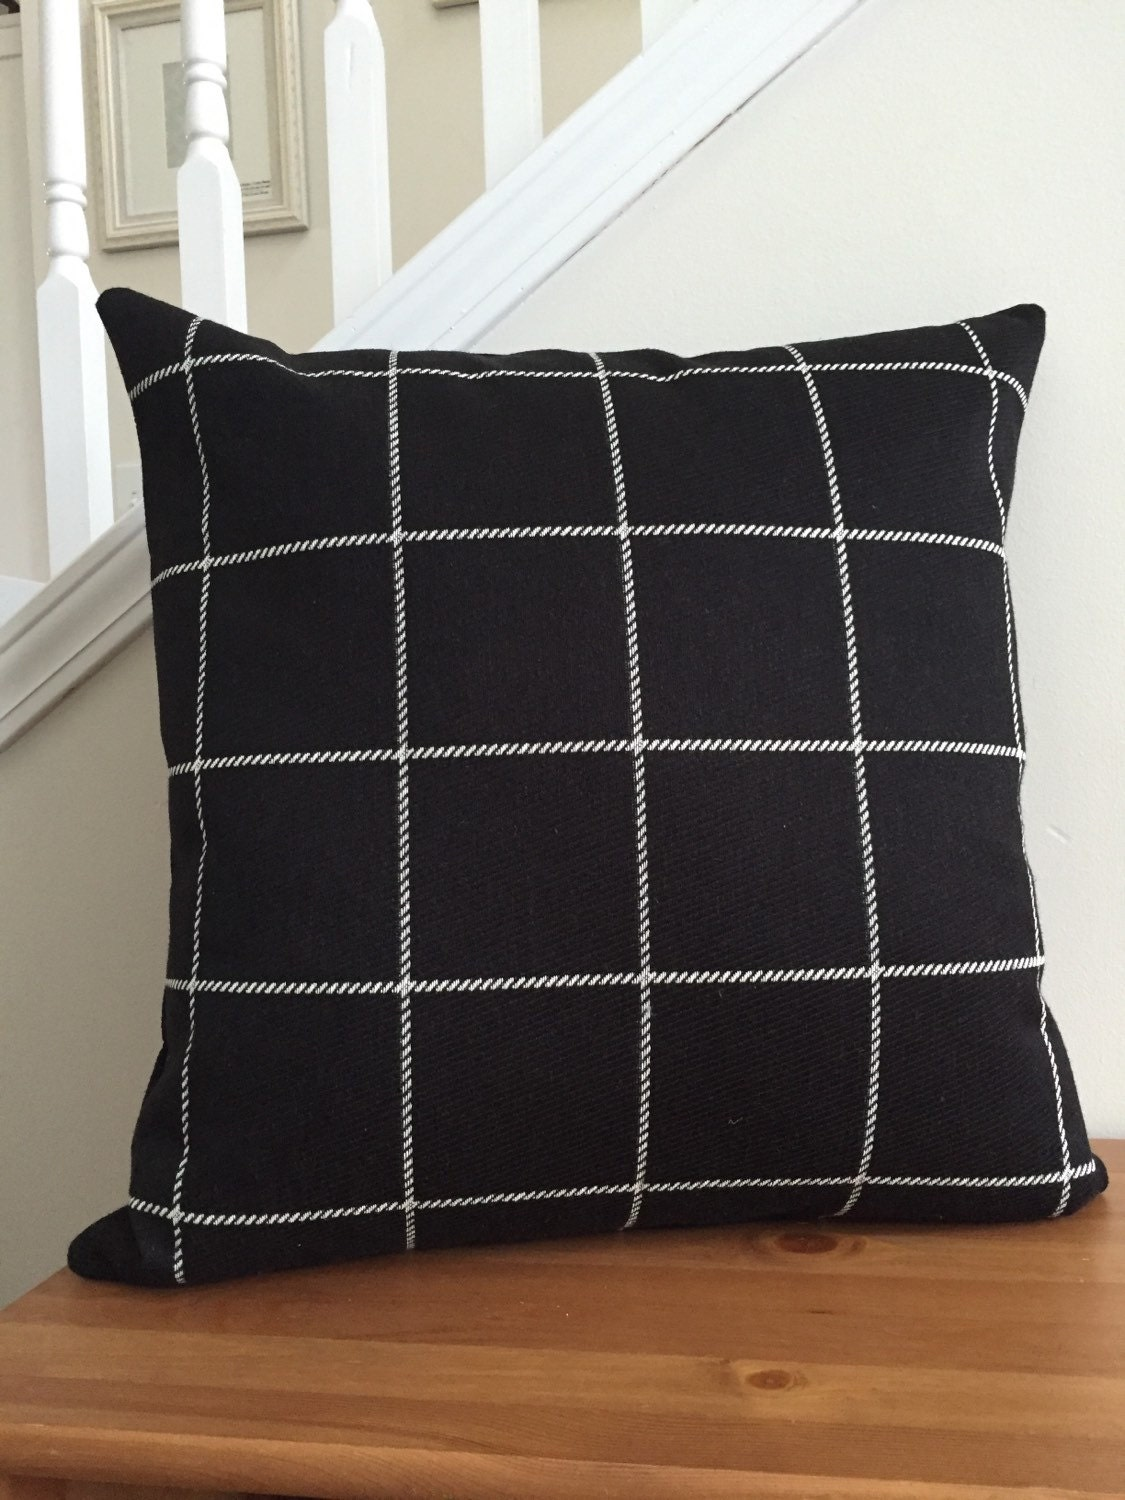 Black Plaid Pillow Cover Black And White Pillow Cover